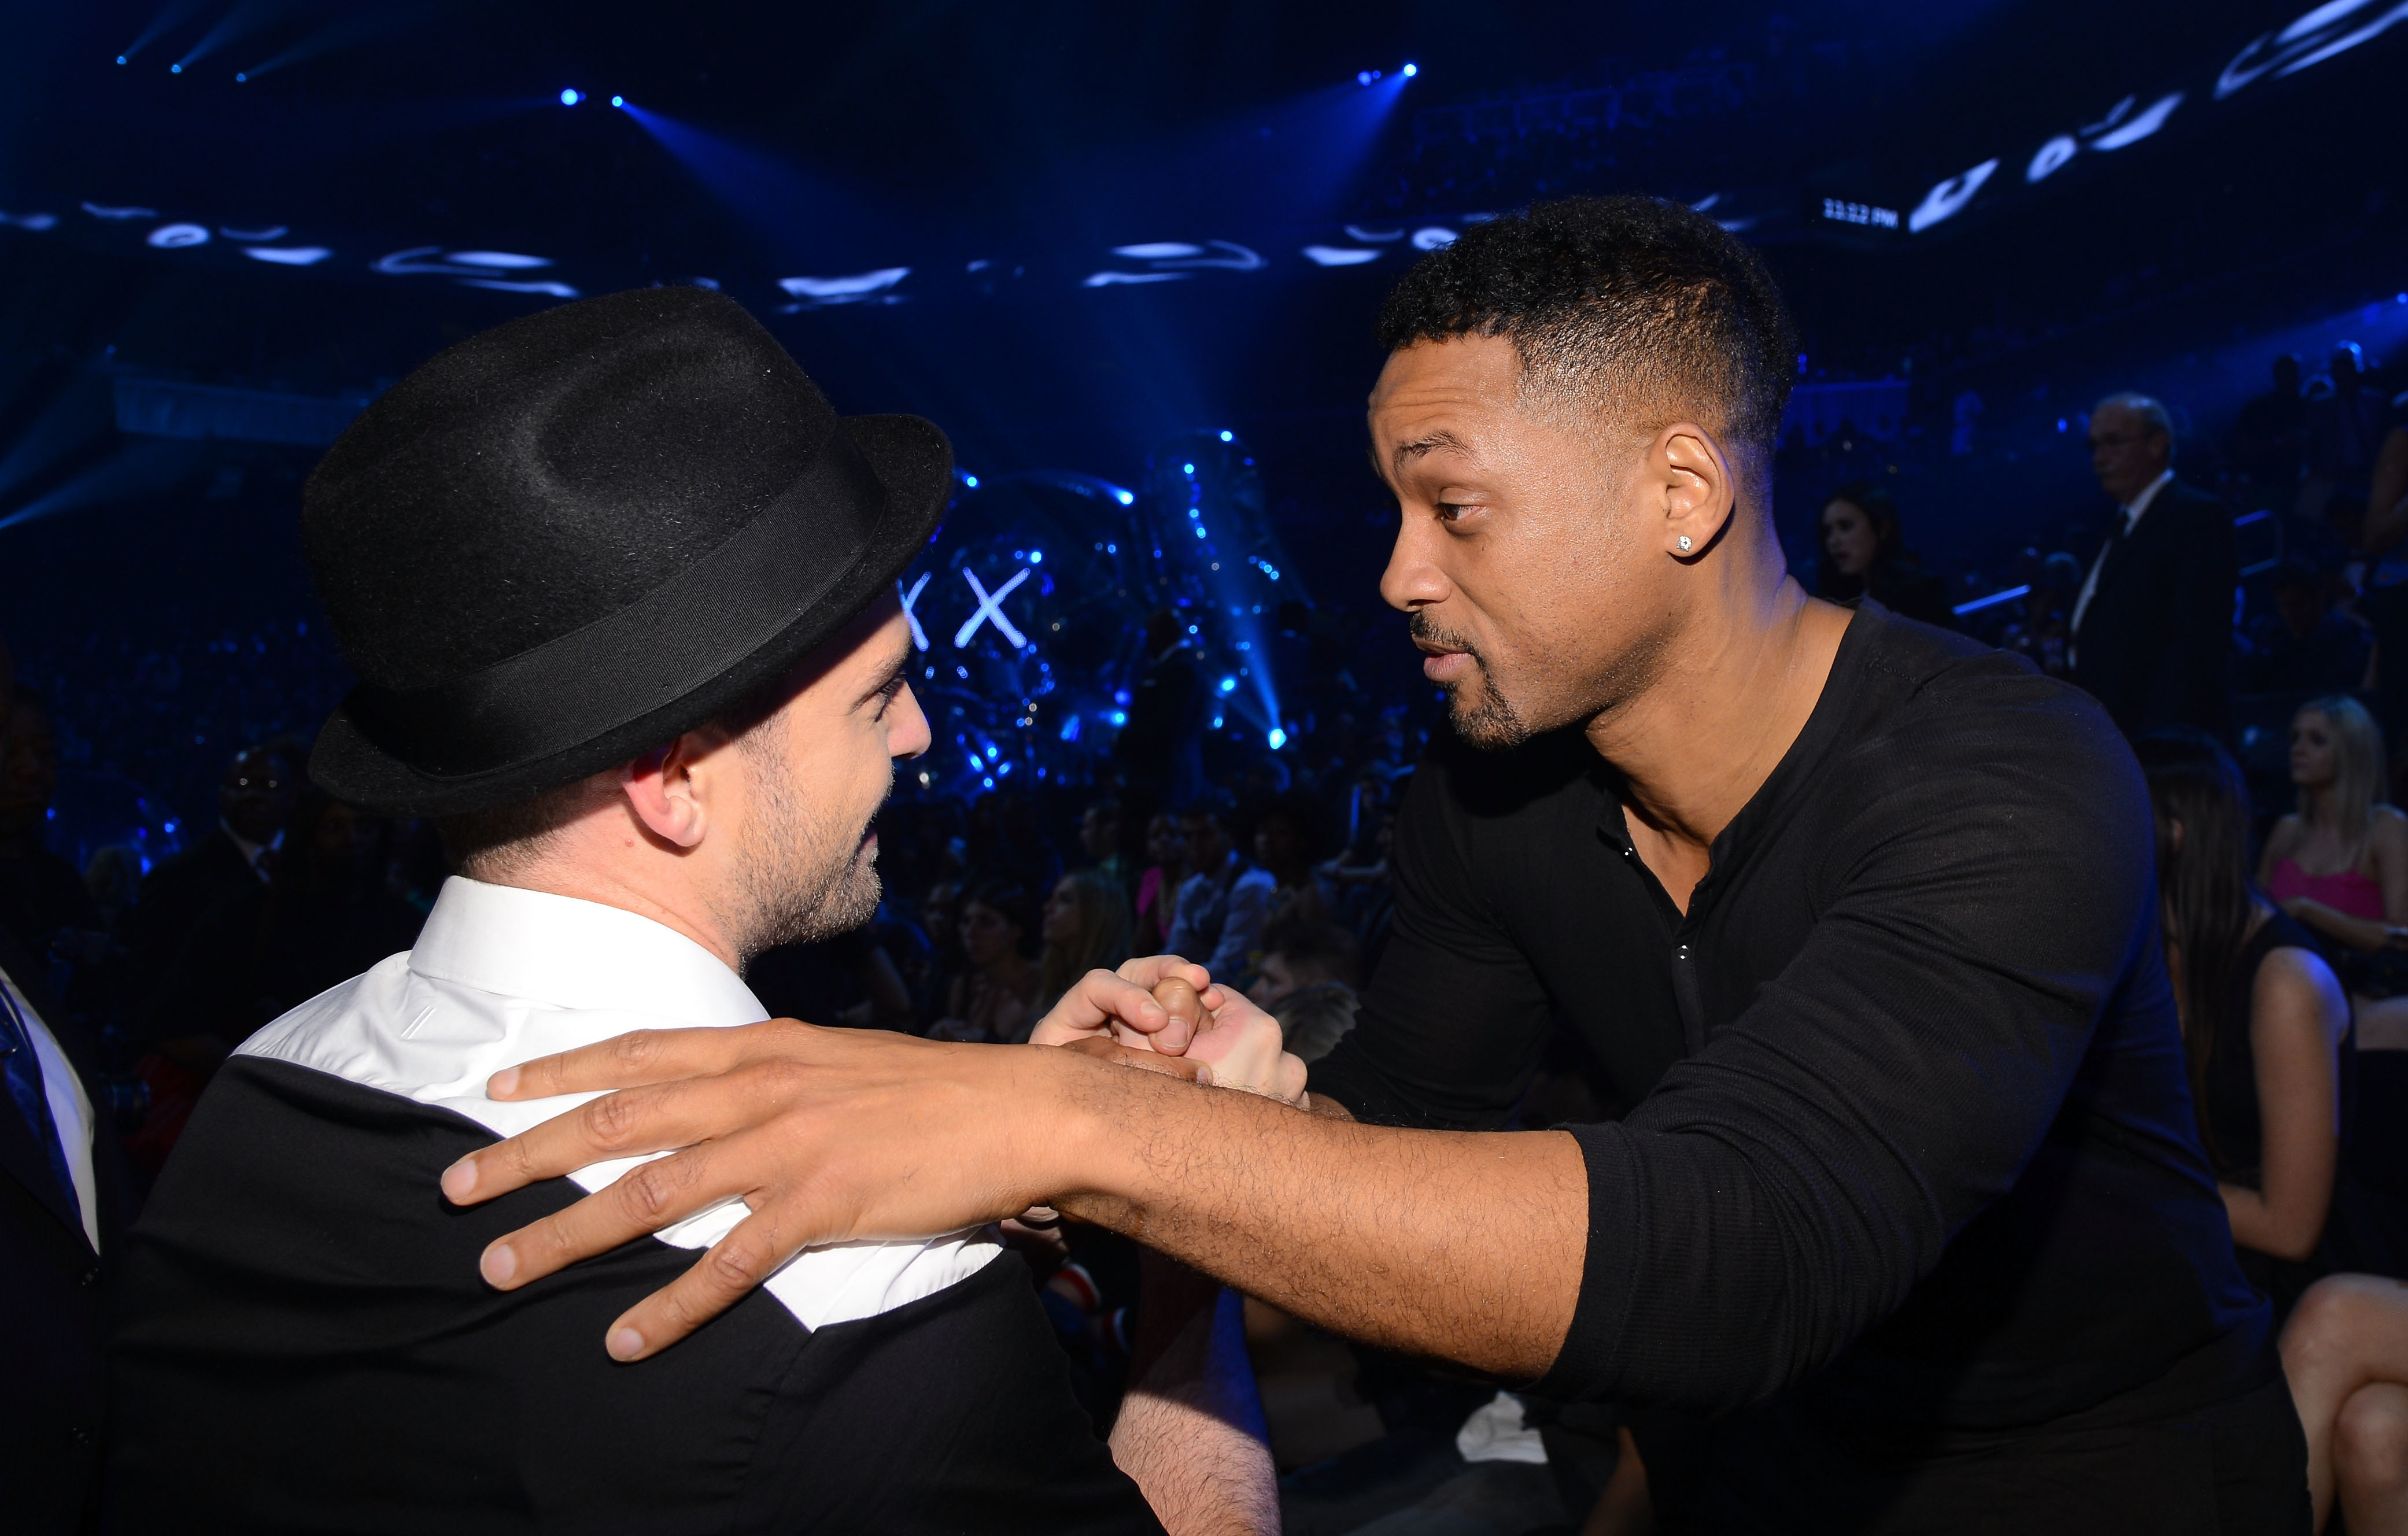 Justin Timberlake and Will Smith attends the MTV Video Music Awards at the Barclays Center in New York City on Aug. 25, 2013.